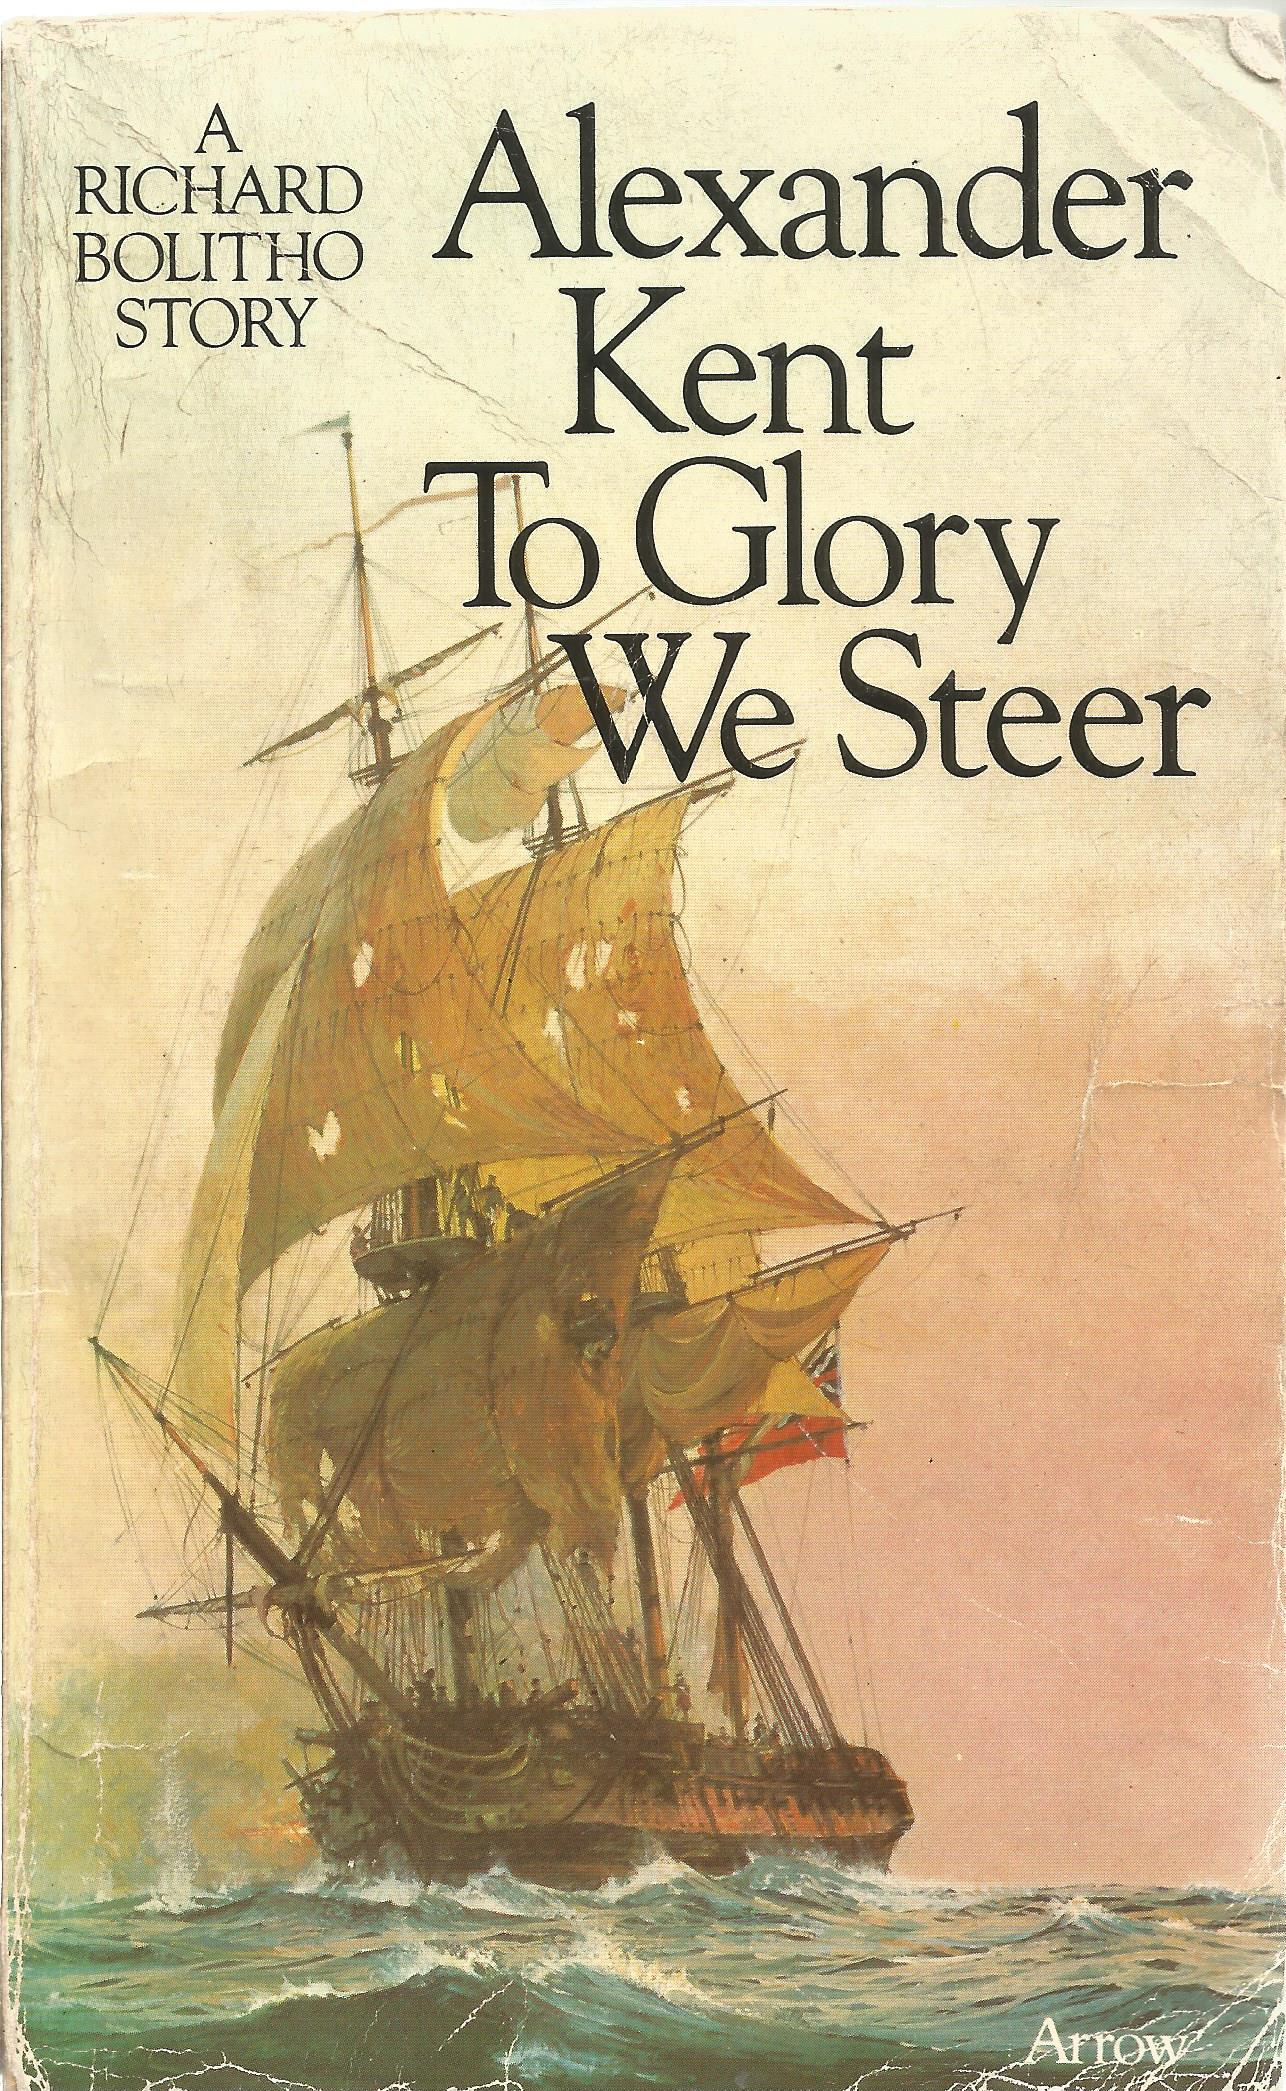 Alexander Kent Paperback Book To Glory We Steer signed by the Author on the Title Page some minor